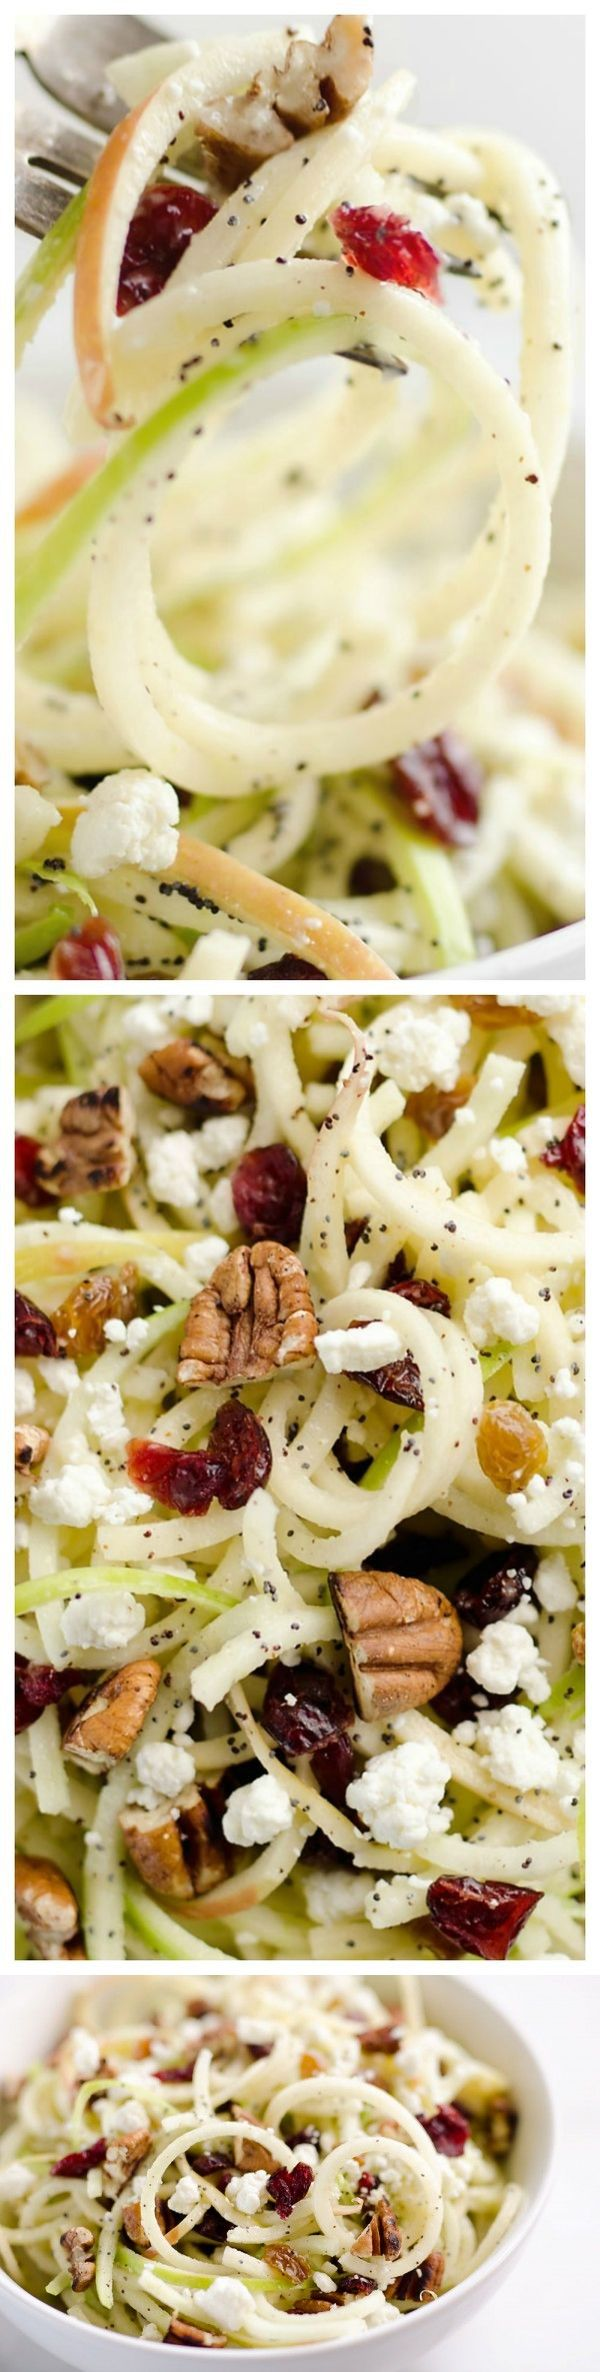 1 Apple, red. 1/4 cup Cranberries, dried. 1/4 cup Golden raisins. 1 Granny smith apple. 1/2 cup Citrus poppy seed dressing. 1/4 cup Goat cheese. ⅓ c. pecans, chopped and optionally toasted.